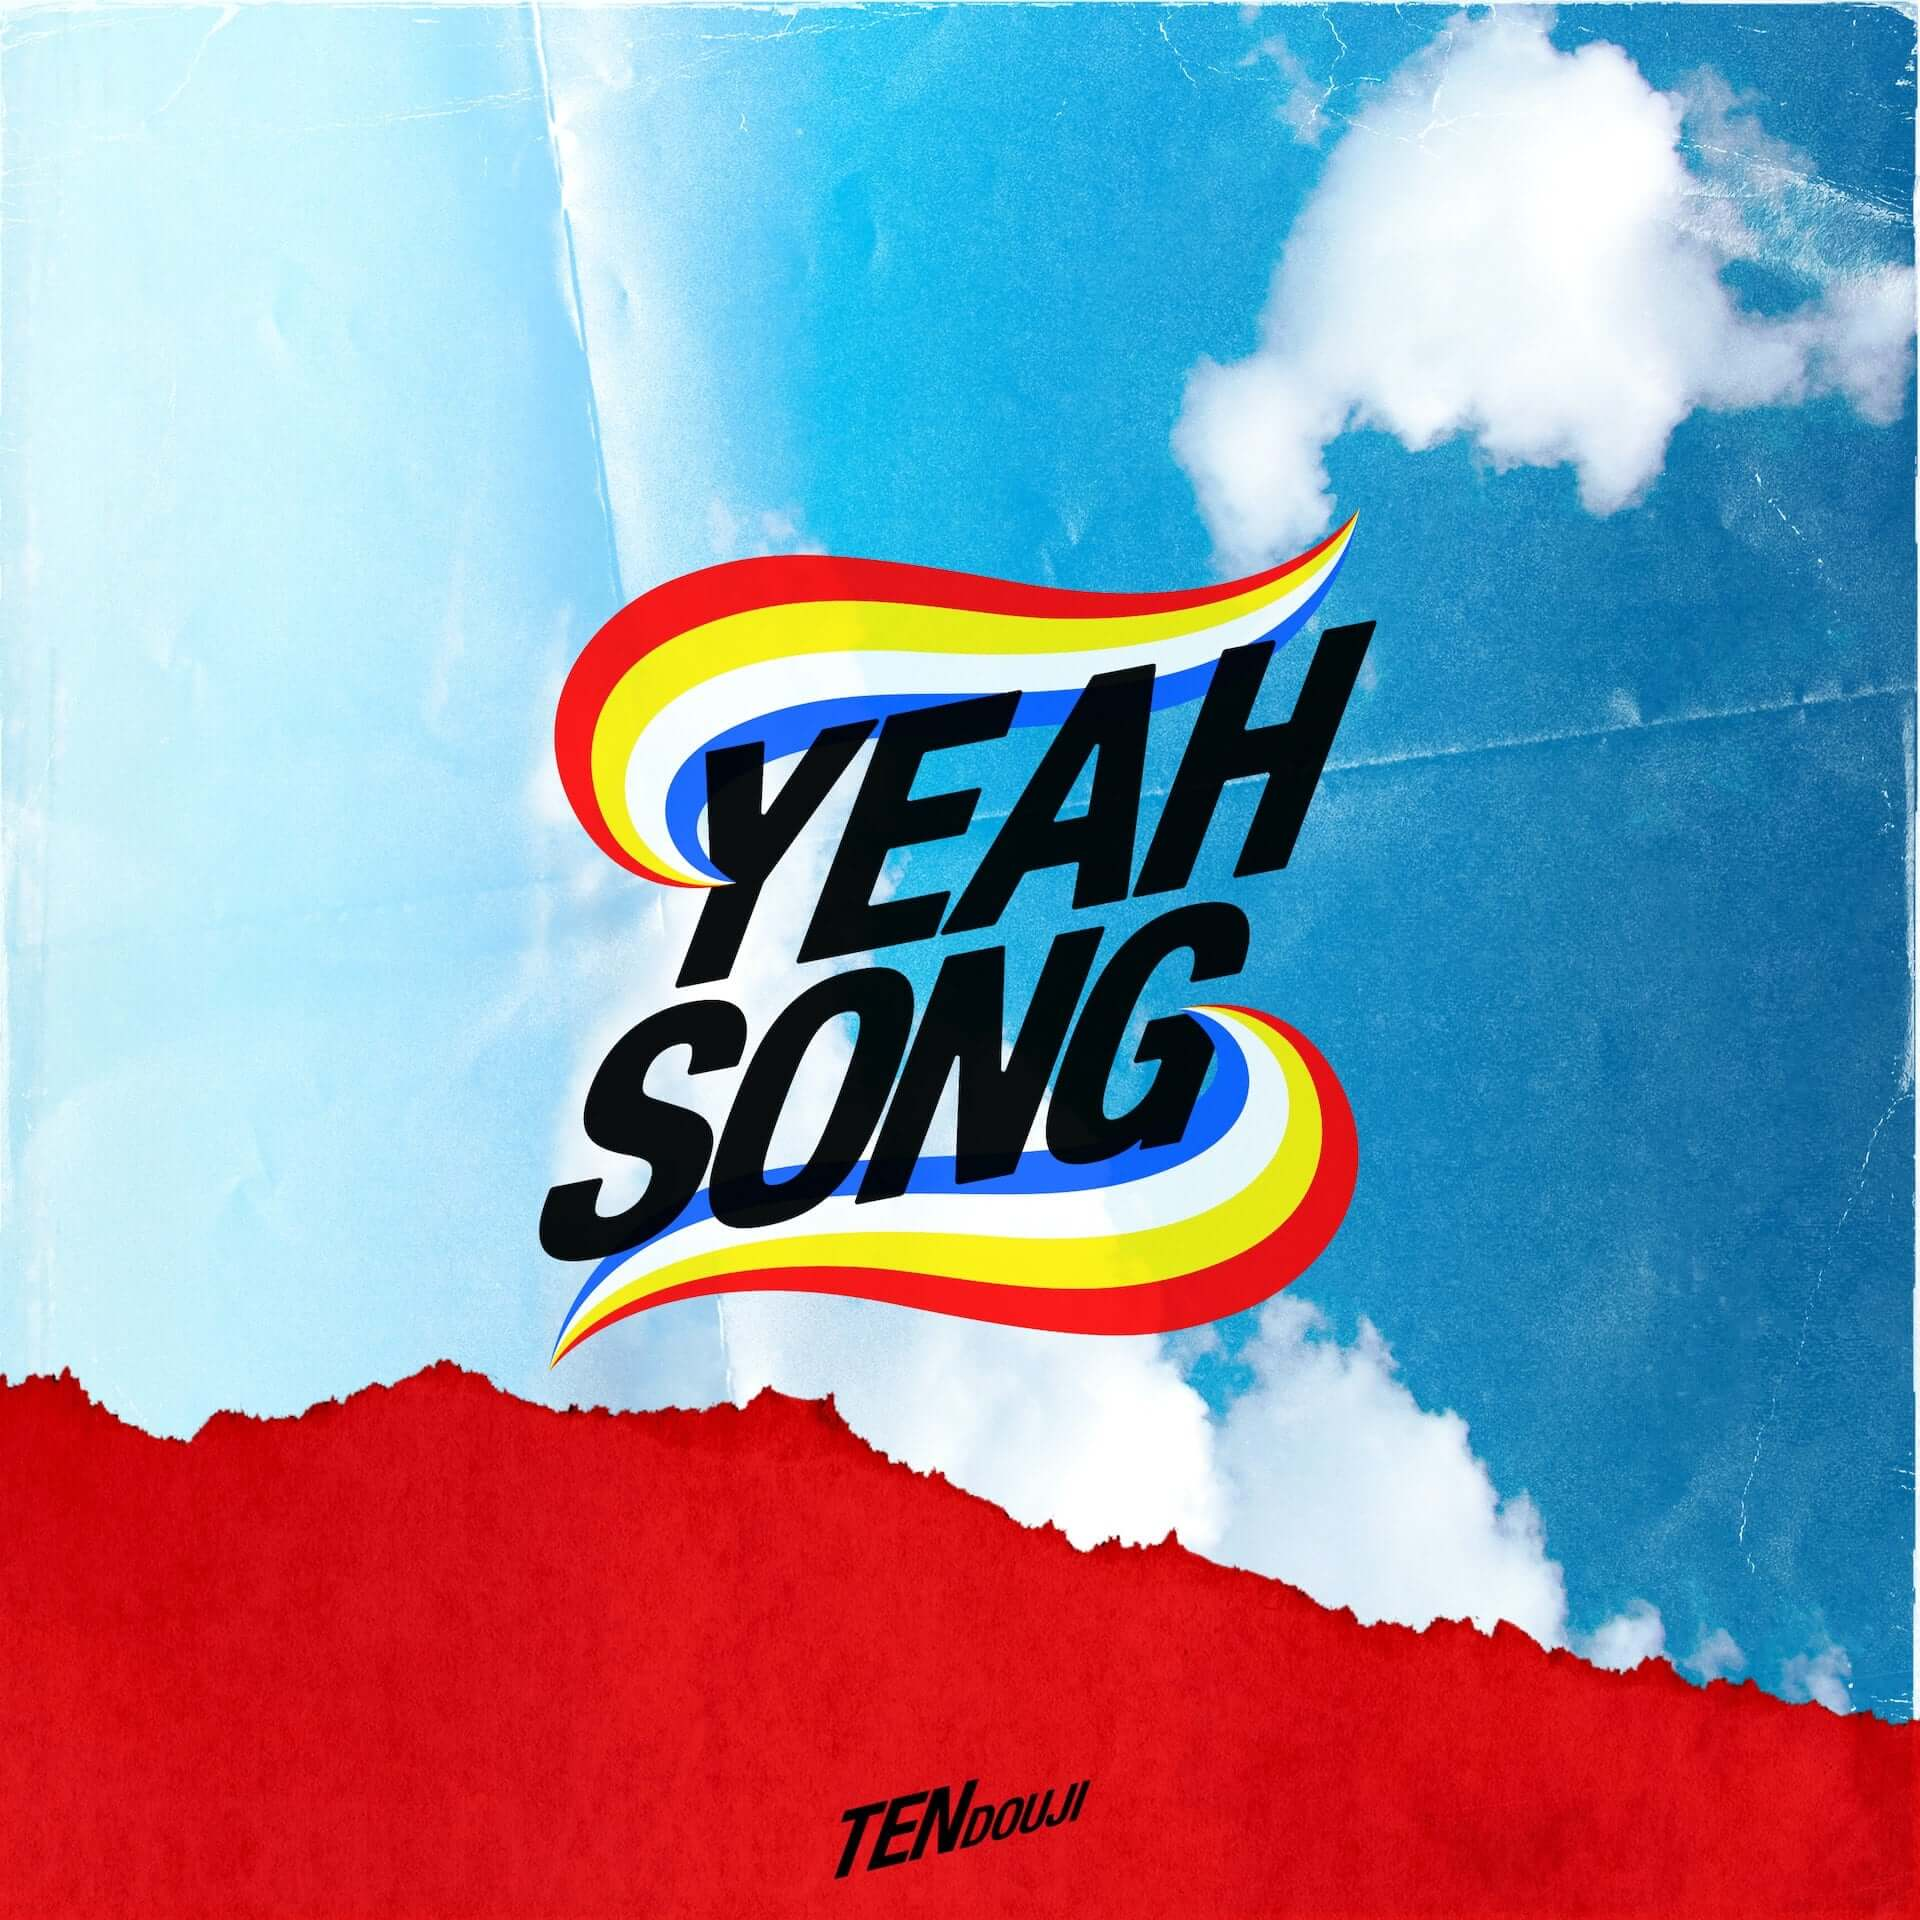 """TENDOUJIが新曲""""YEAH-SONG""""を配信決定!Margtによるアートワーク&新ビジュアルも公開 music200901_tendouji_1-1920x1920"""